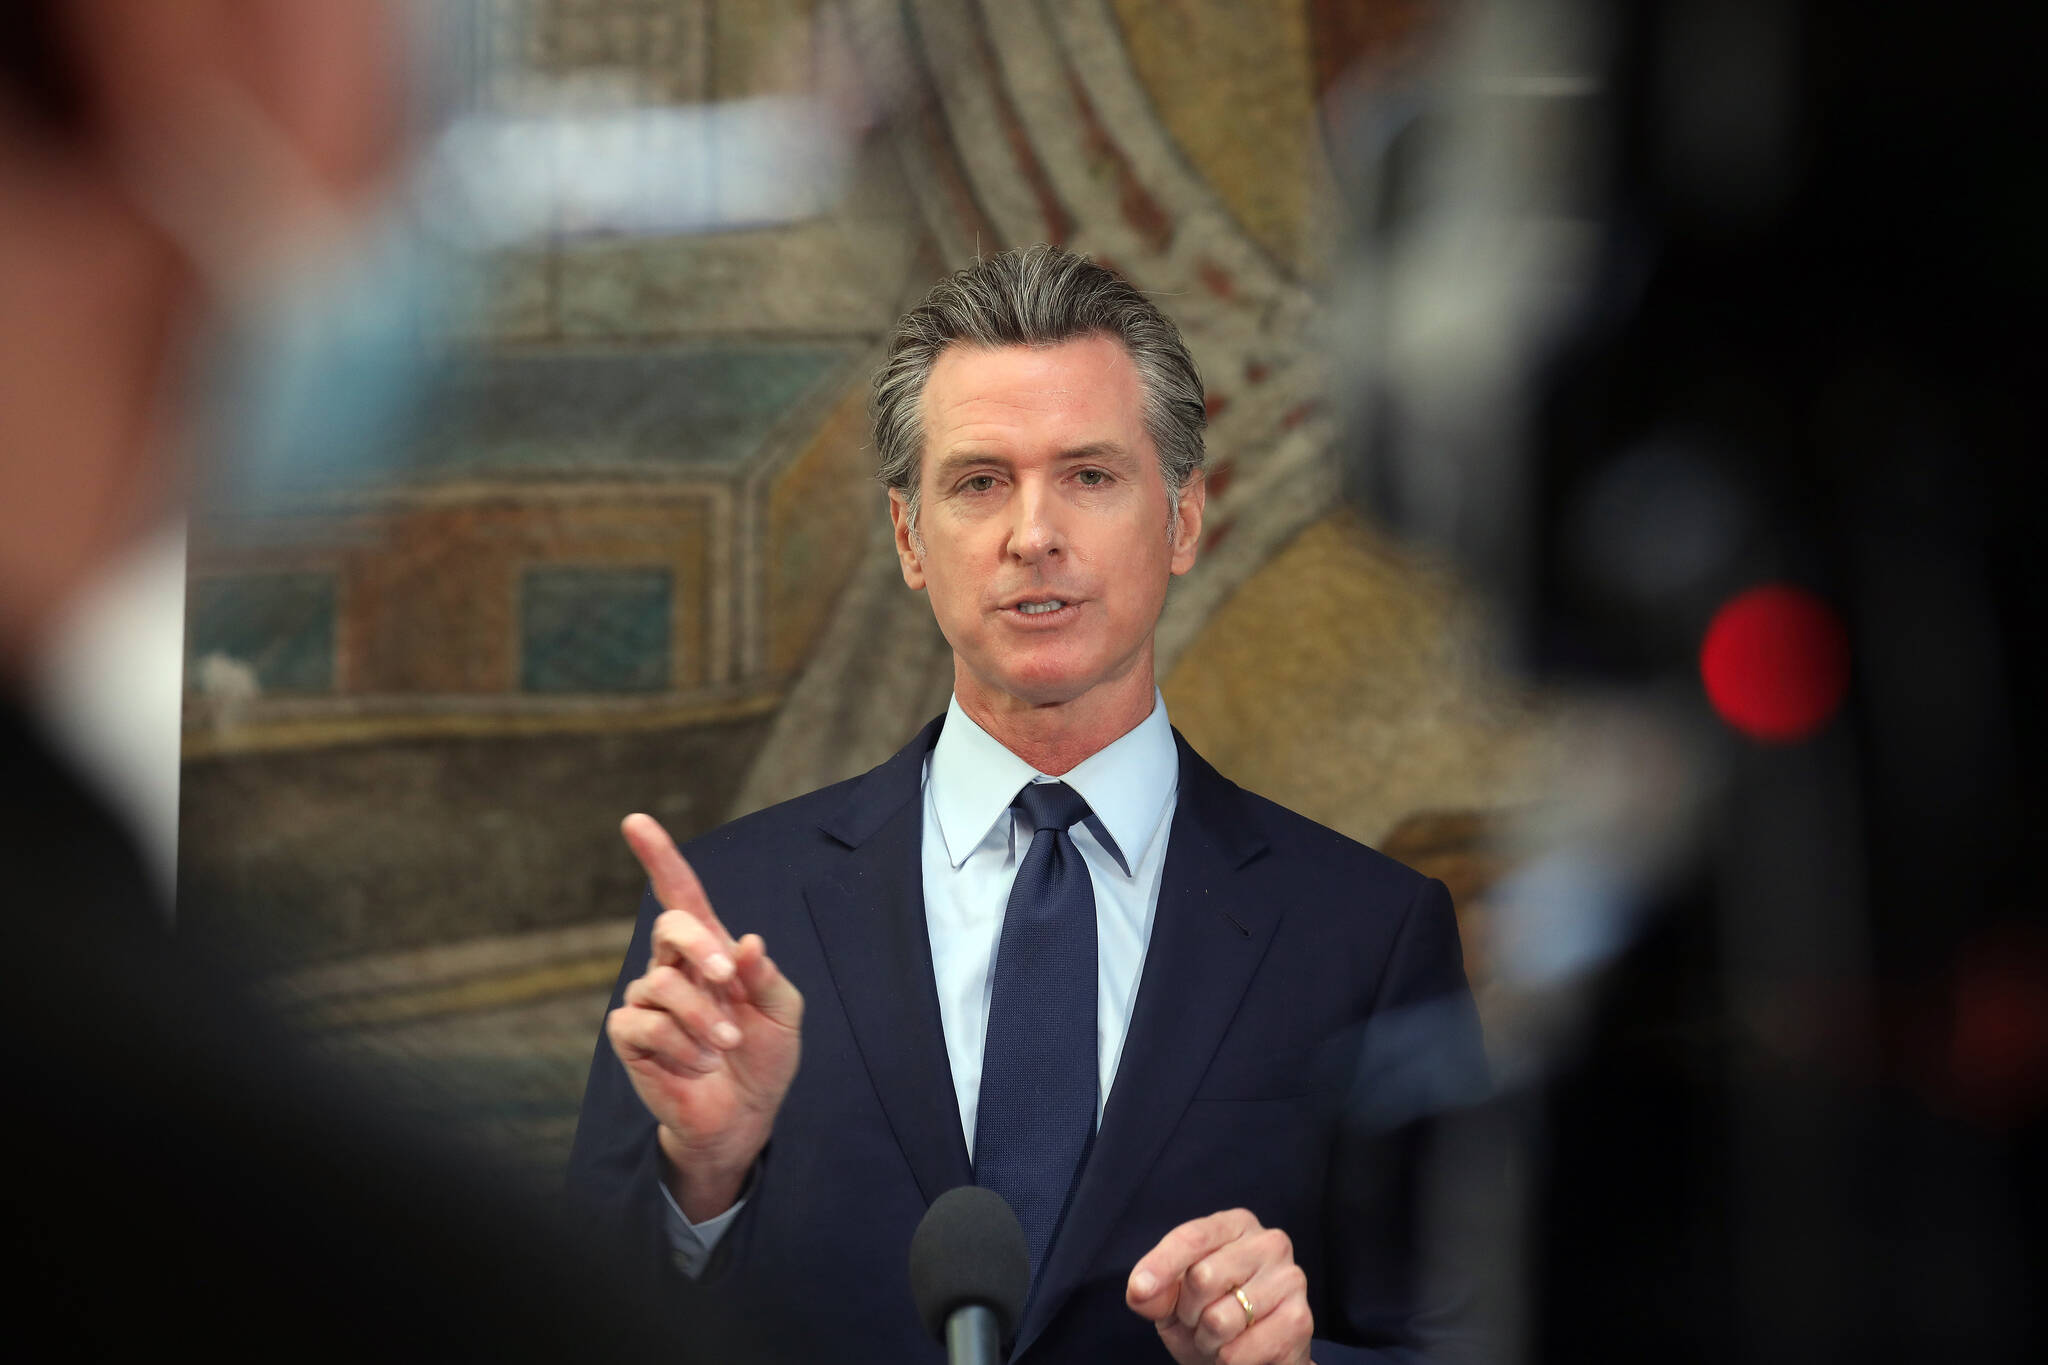 Huge turnout from Bay Area Democrats could sway the recall vote in Gov. Gavin Newsom's favor. (Jim Wilson/The New York Times)